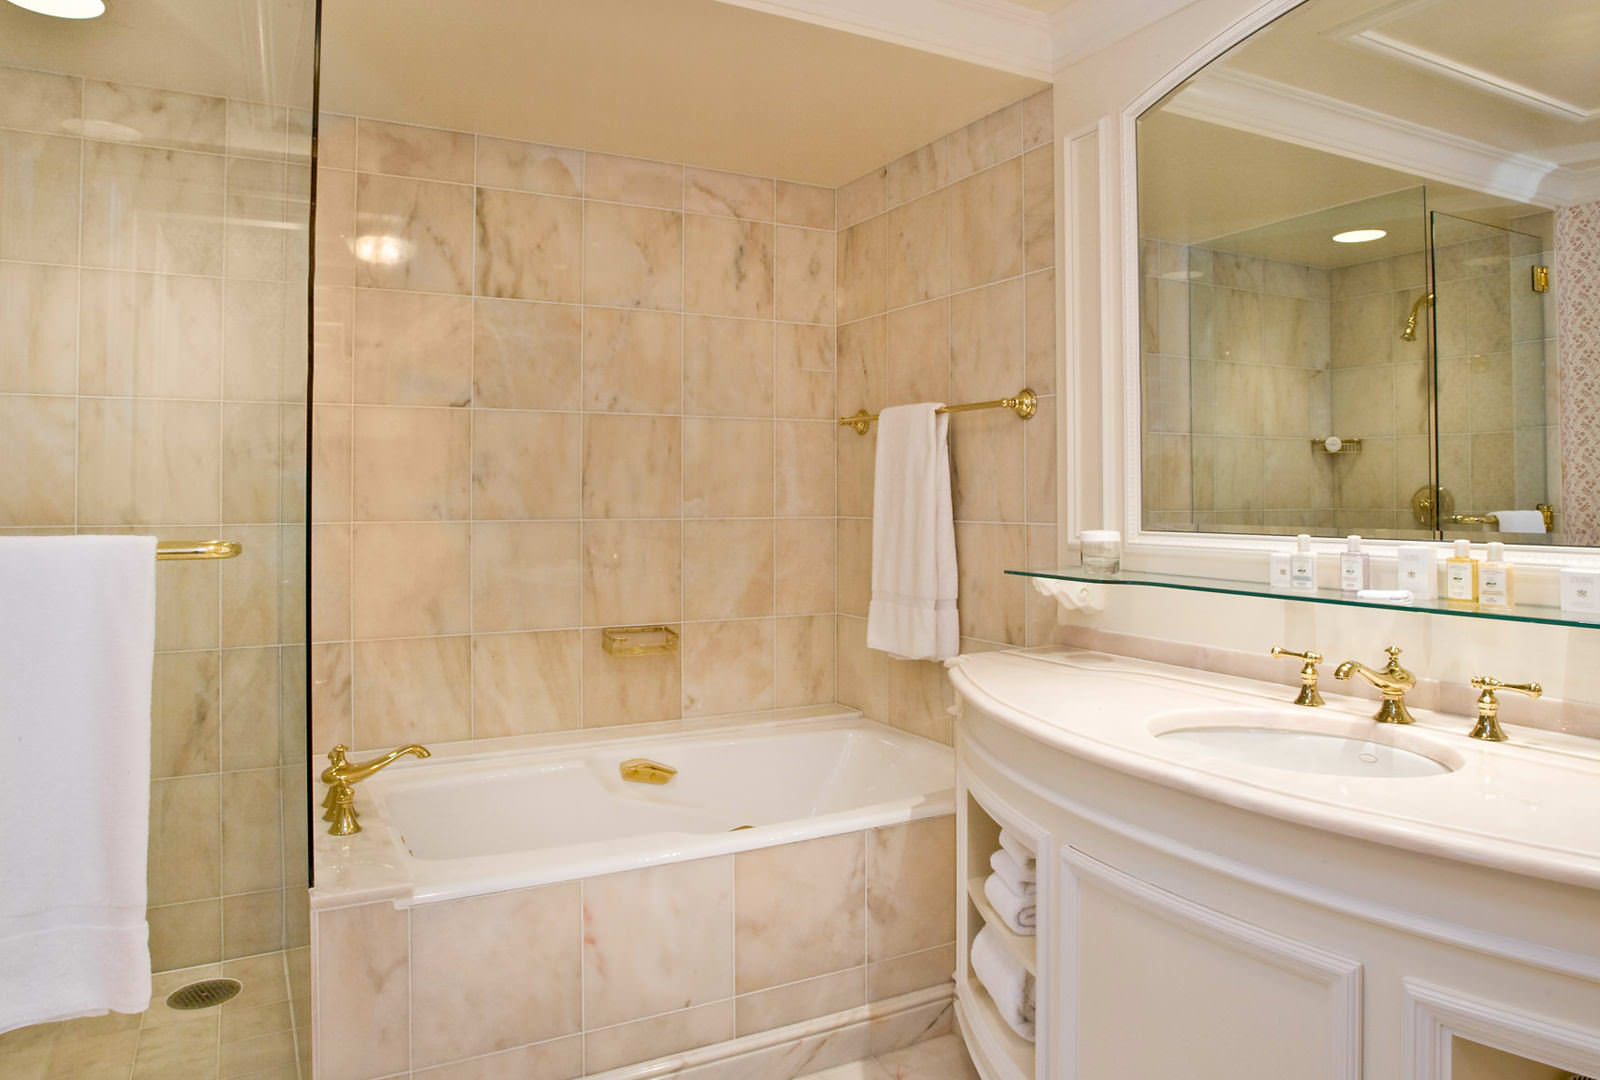 Grand America Hotel Italian marble bathroom with separate shower and soaking tub